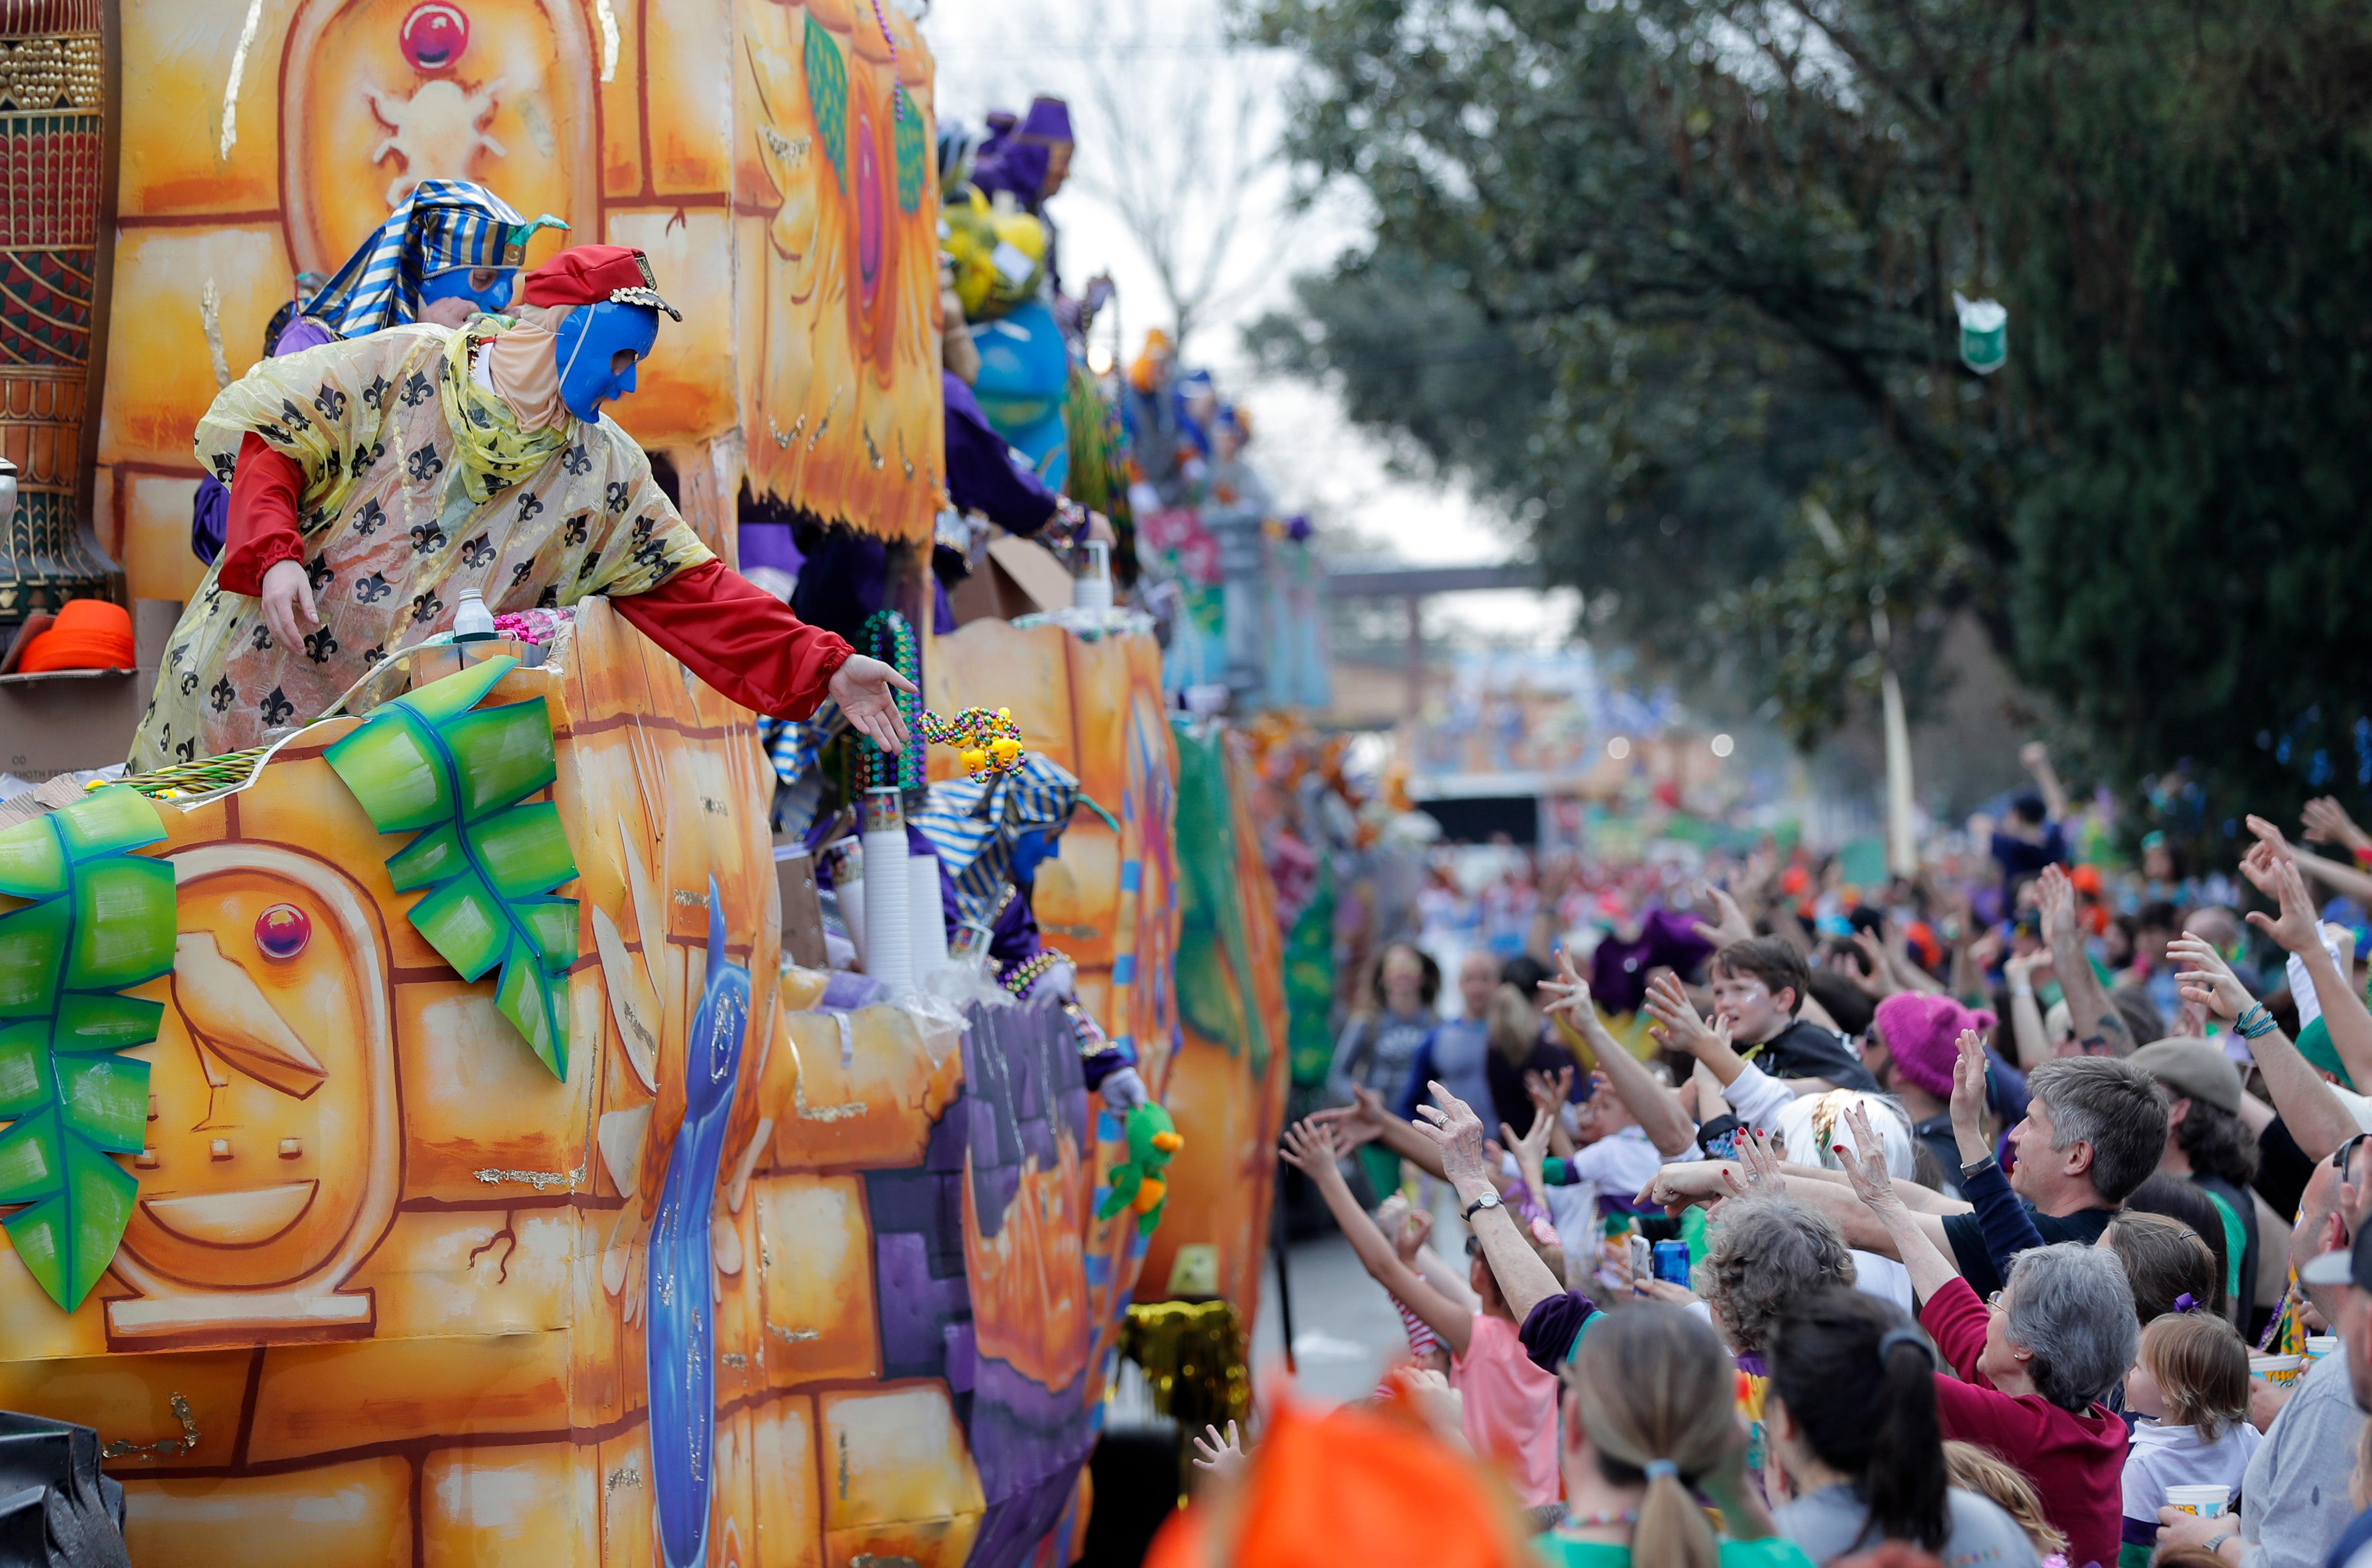 Float riders toss beads and trinkets during the Krewe of Thoth Mardi Gras parade in New Orleans, Sunday, Feb. 11, 2018. The krewe's original parade route was designed specifically to serve people who were unable to attend other parades in the city. The route passes in front of several extended healthcare facilities. Carnival season will culminate on Mardi Gras day this Tuesday, Feb. 13. (AP Photo/Gerald Herbert)